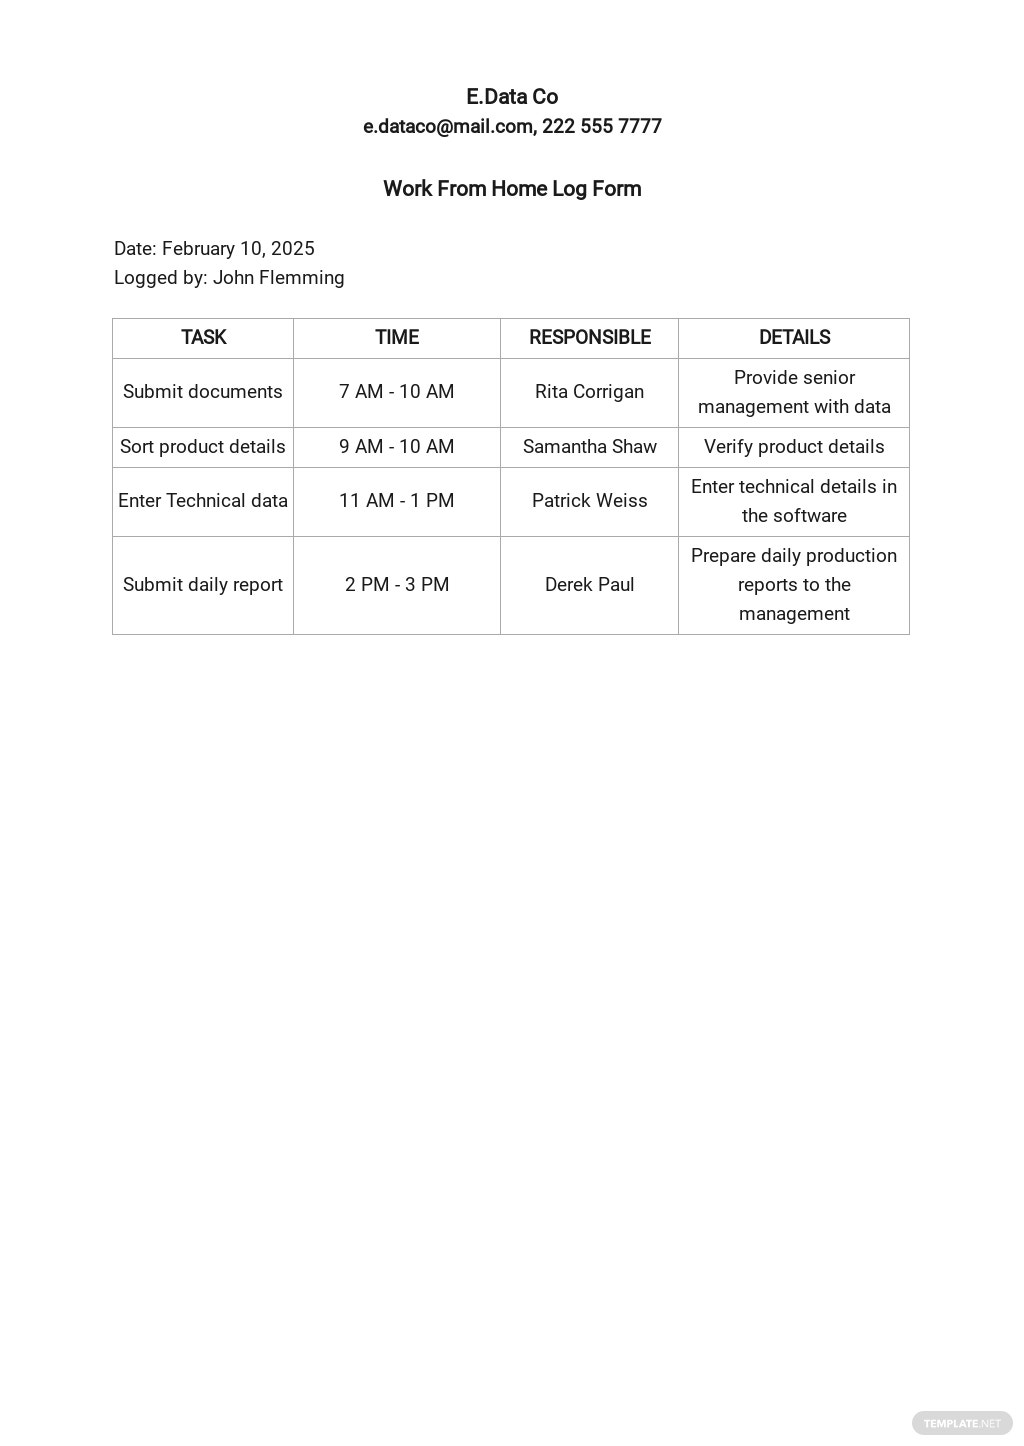 Work From Home Log Form Template.jpe